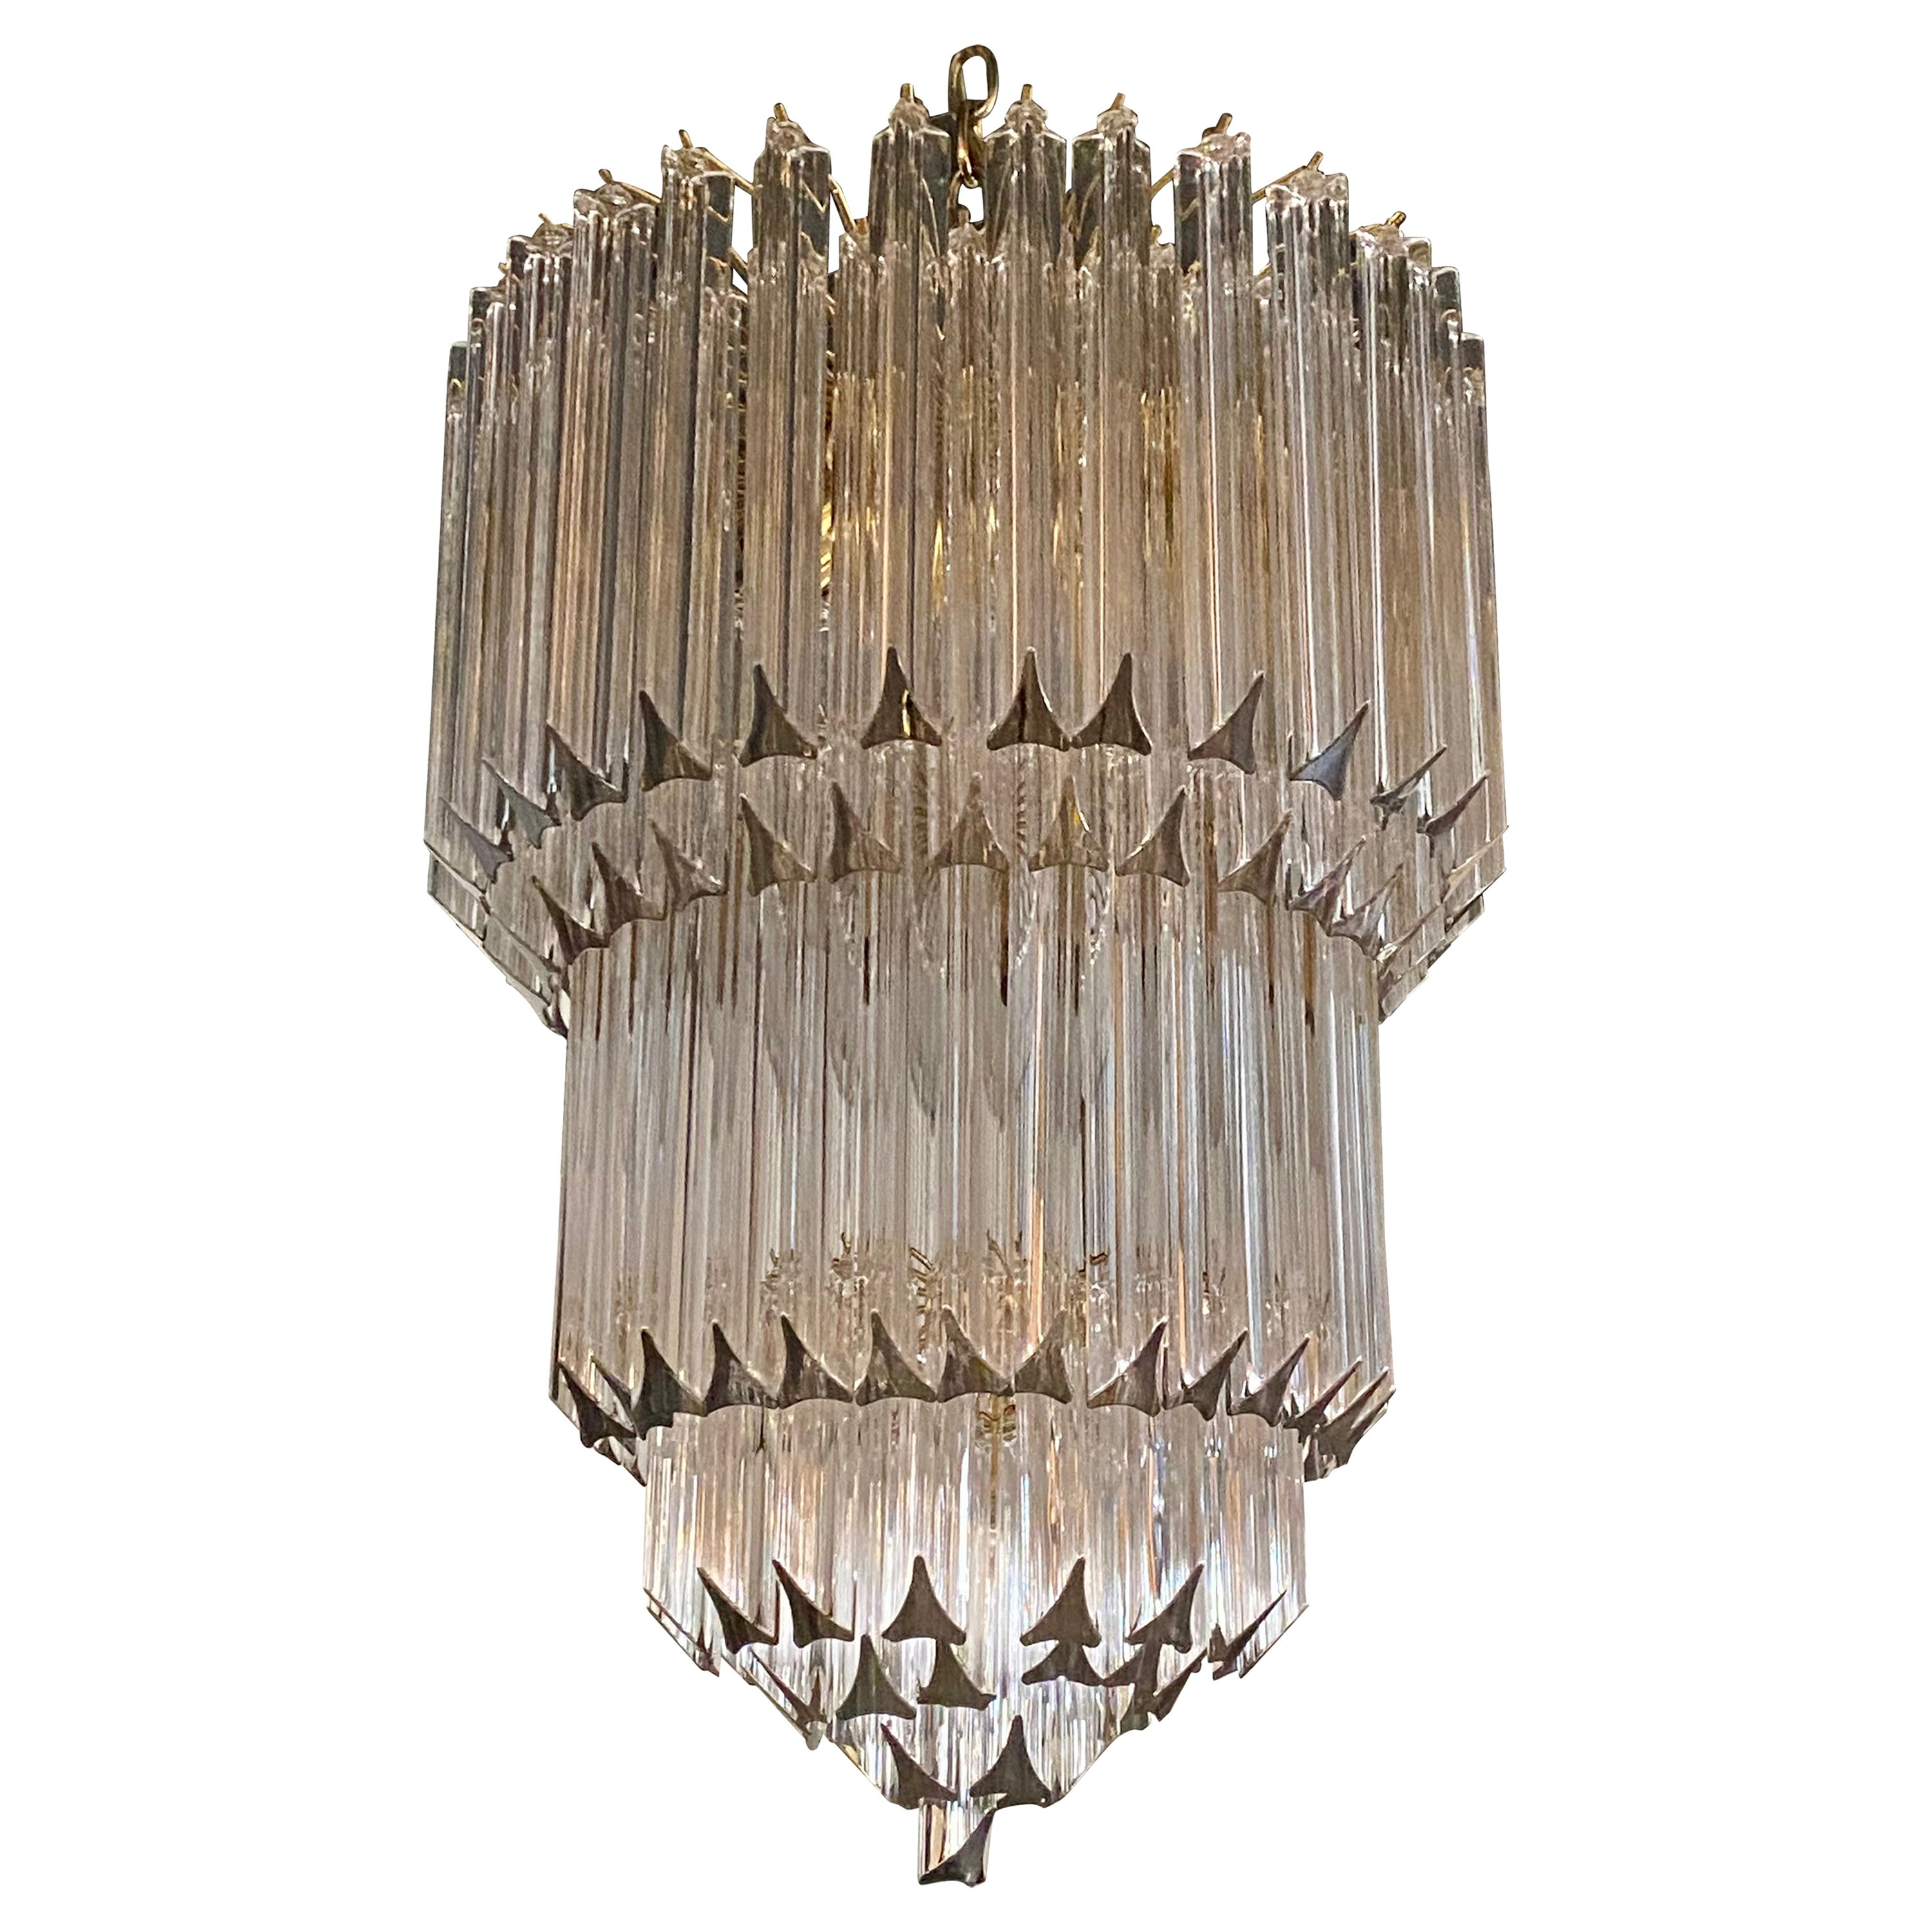 Venini Camer Glass and Brass Tiered Waterfall Chandelier, Italy